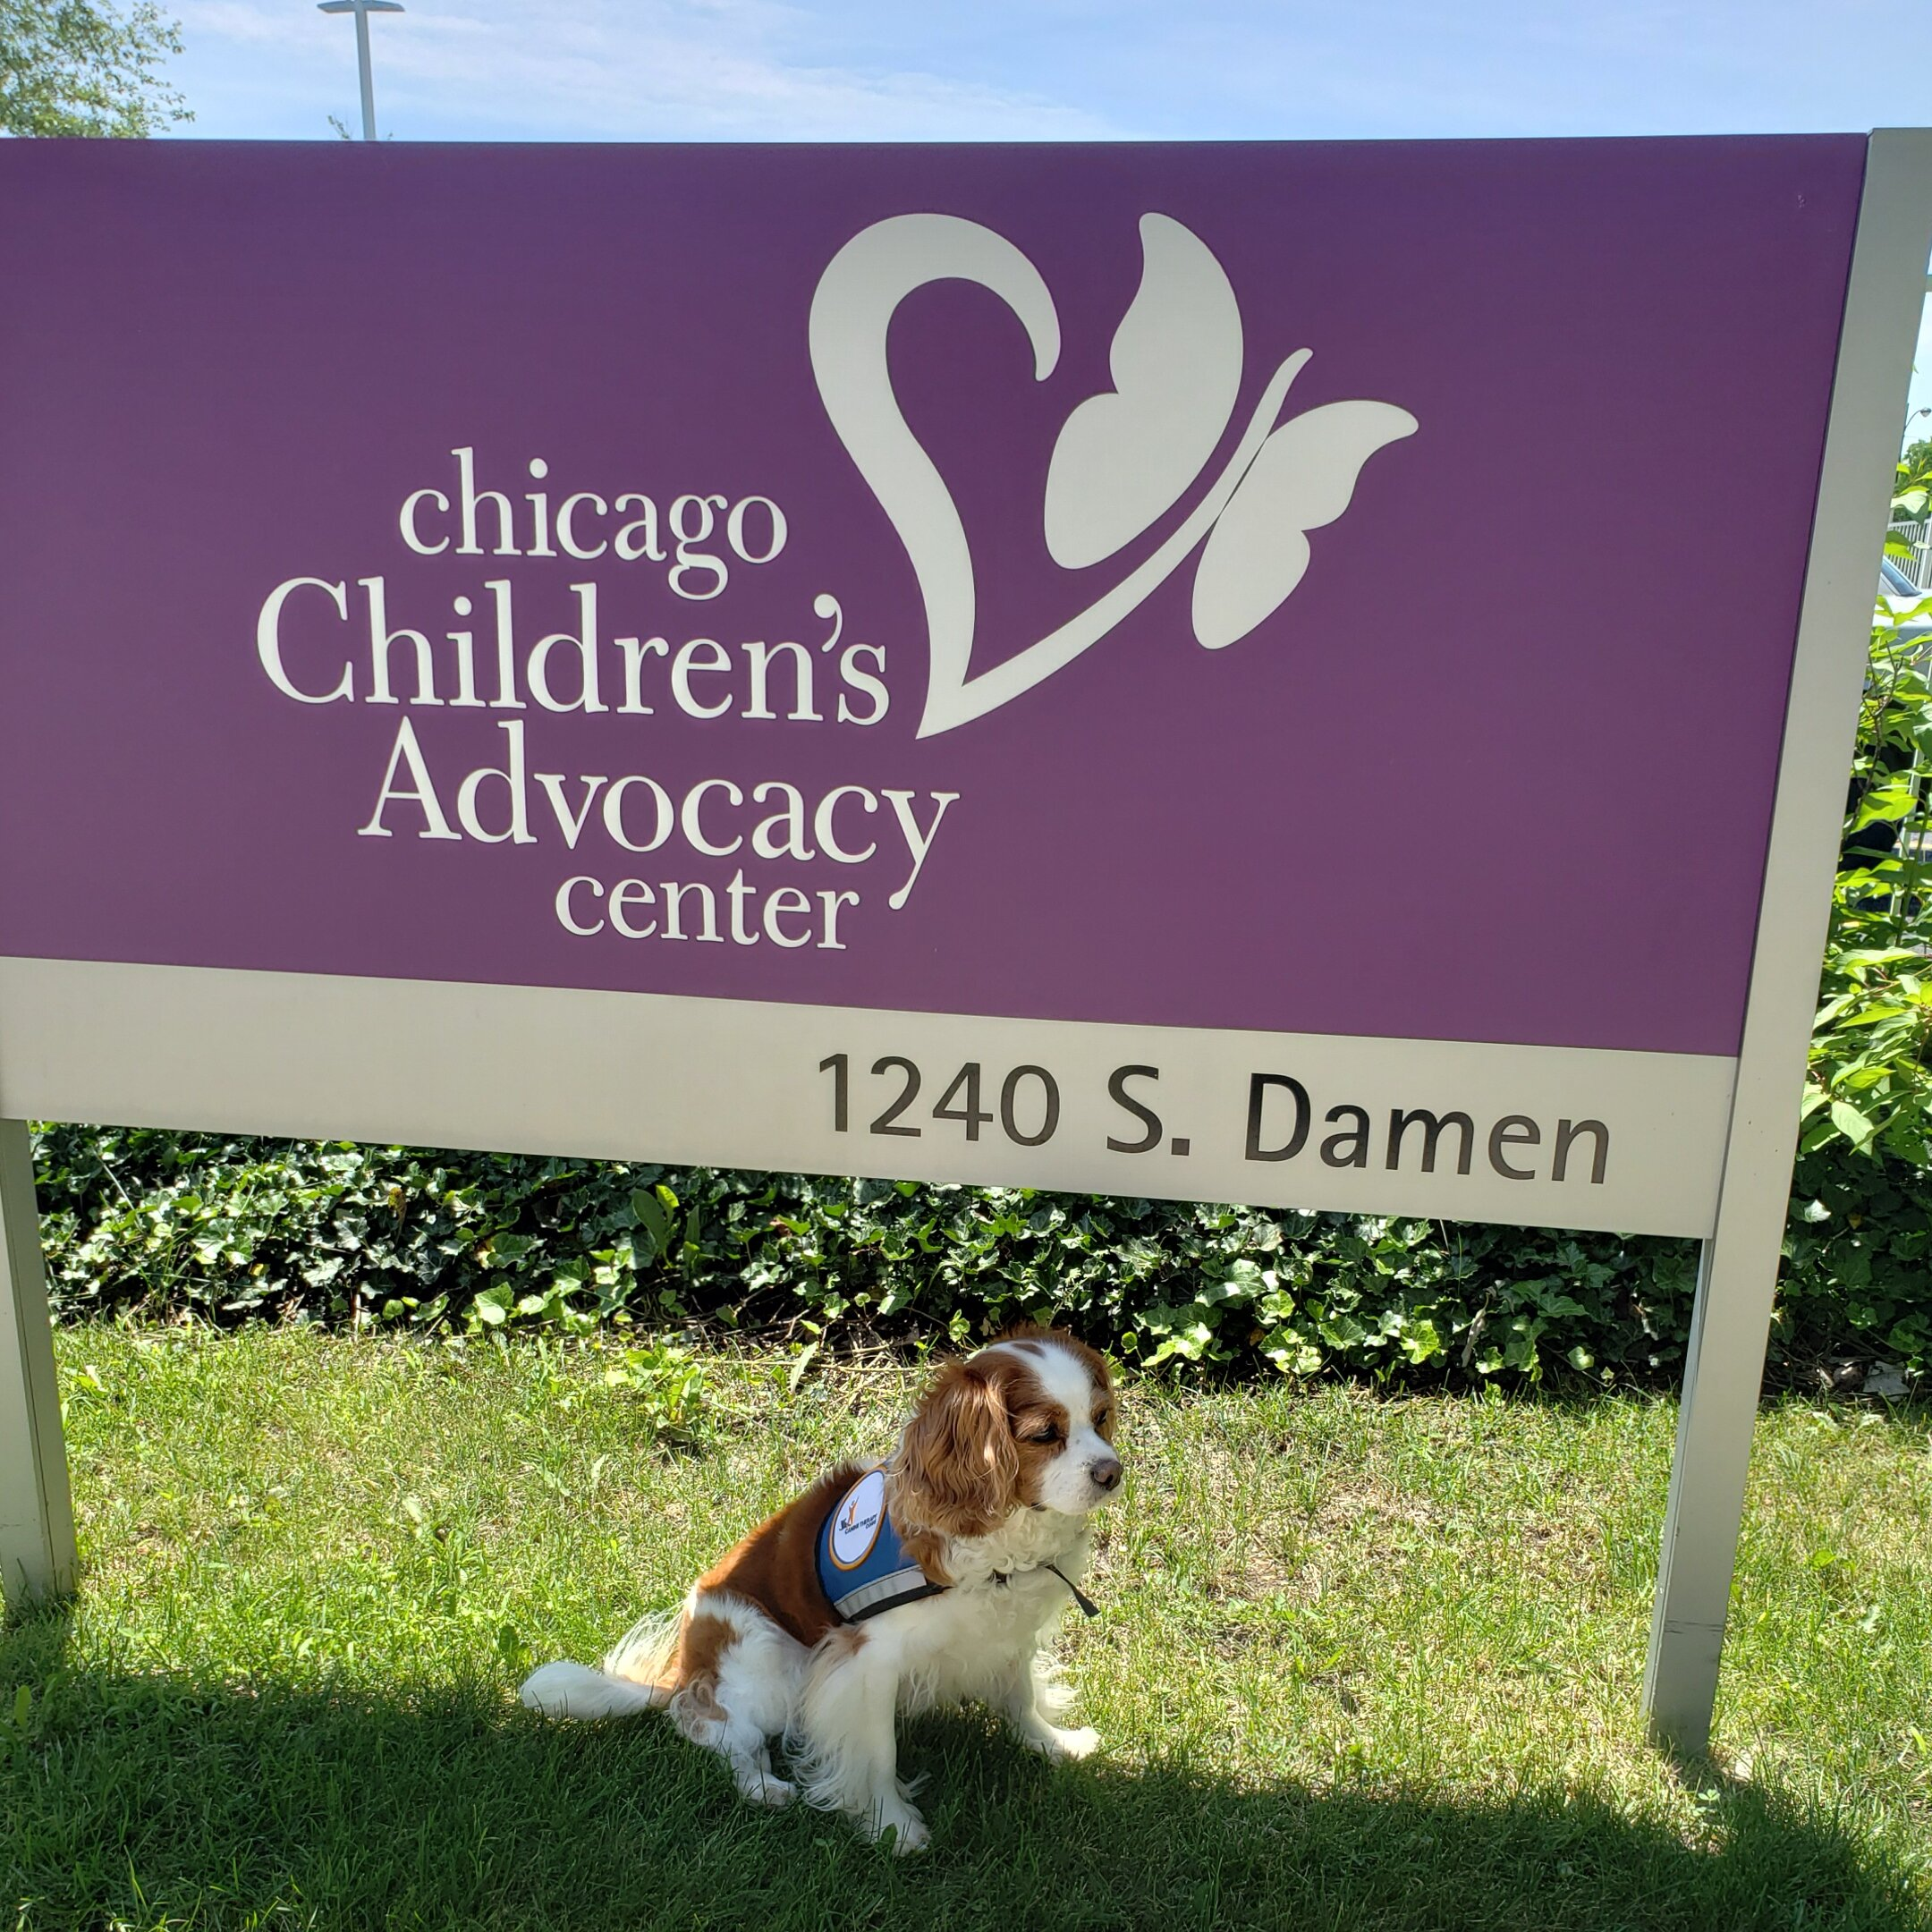 Olive is one of many dogs who help children reduce anxiety while waiting for their appointments at Chicago Children's Advocacy Center.